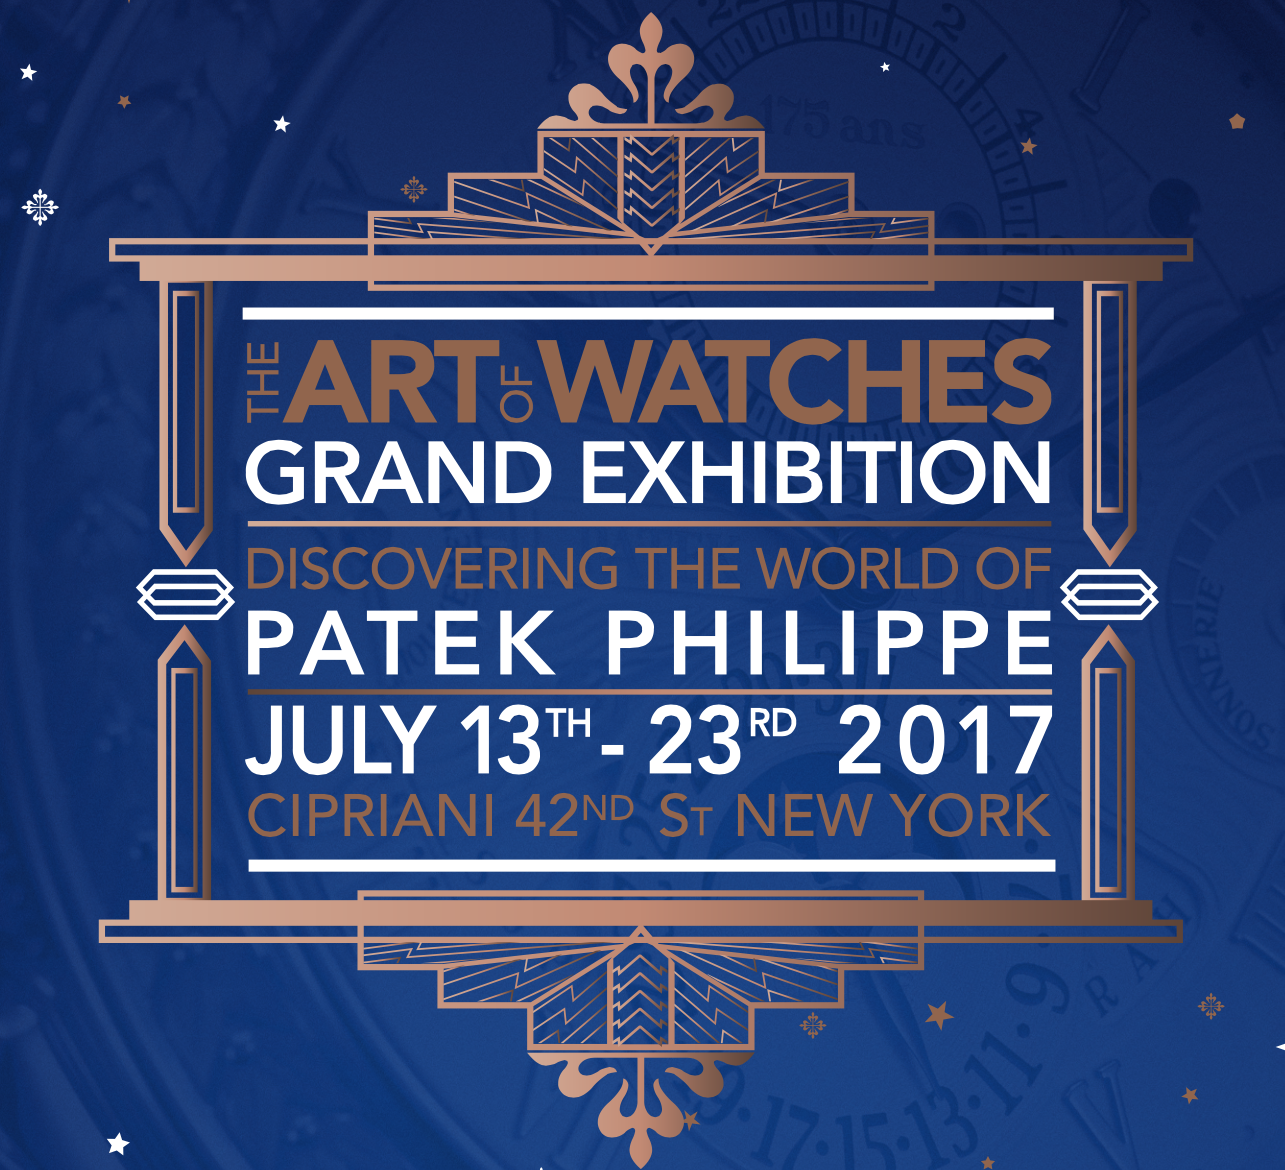 Art of Watches Grand Exhibition: Patek Philippe